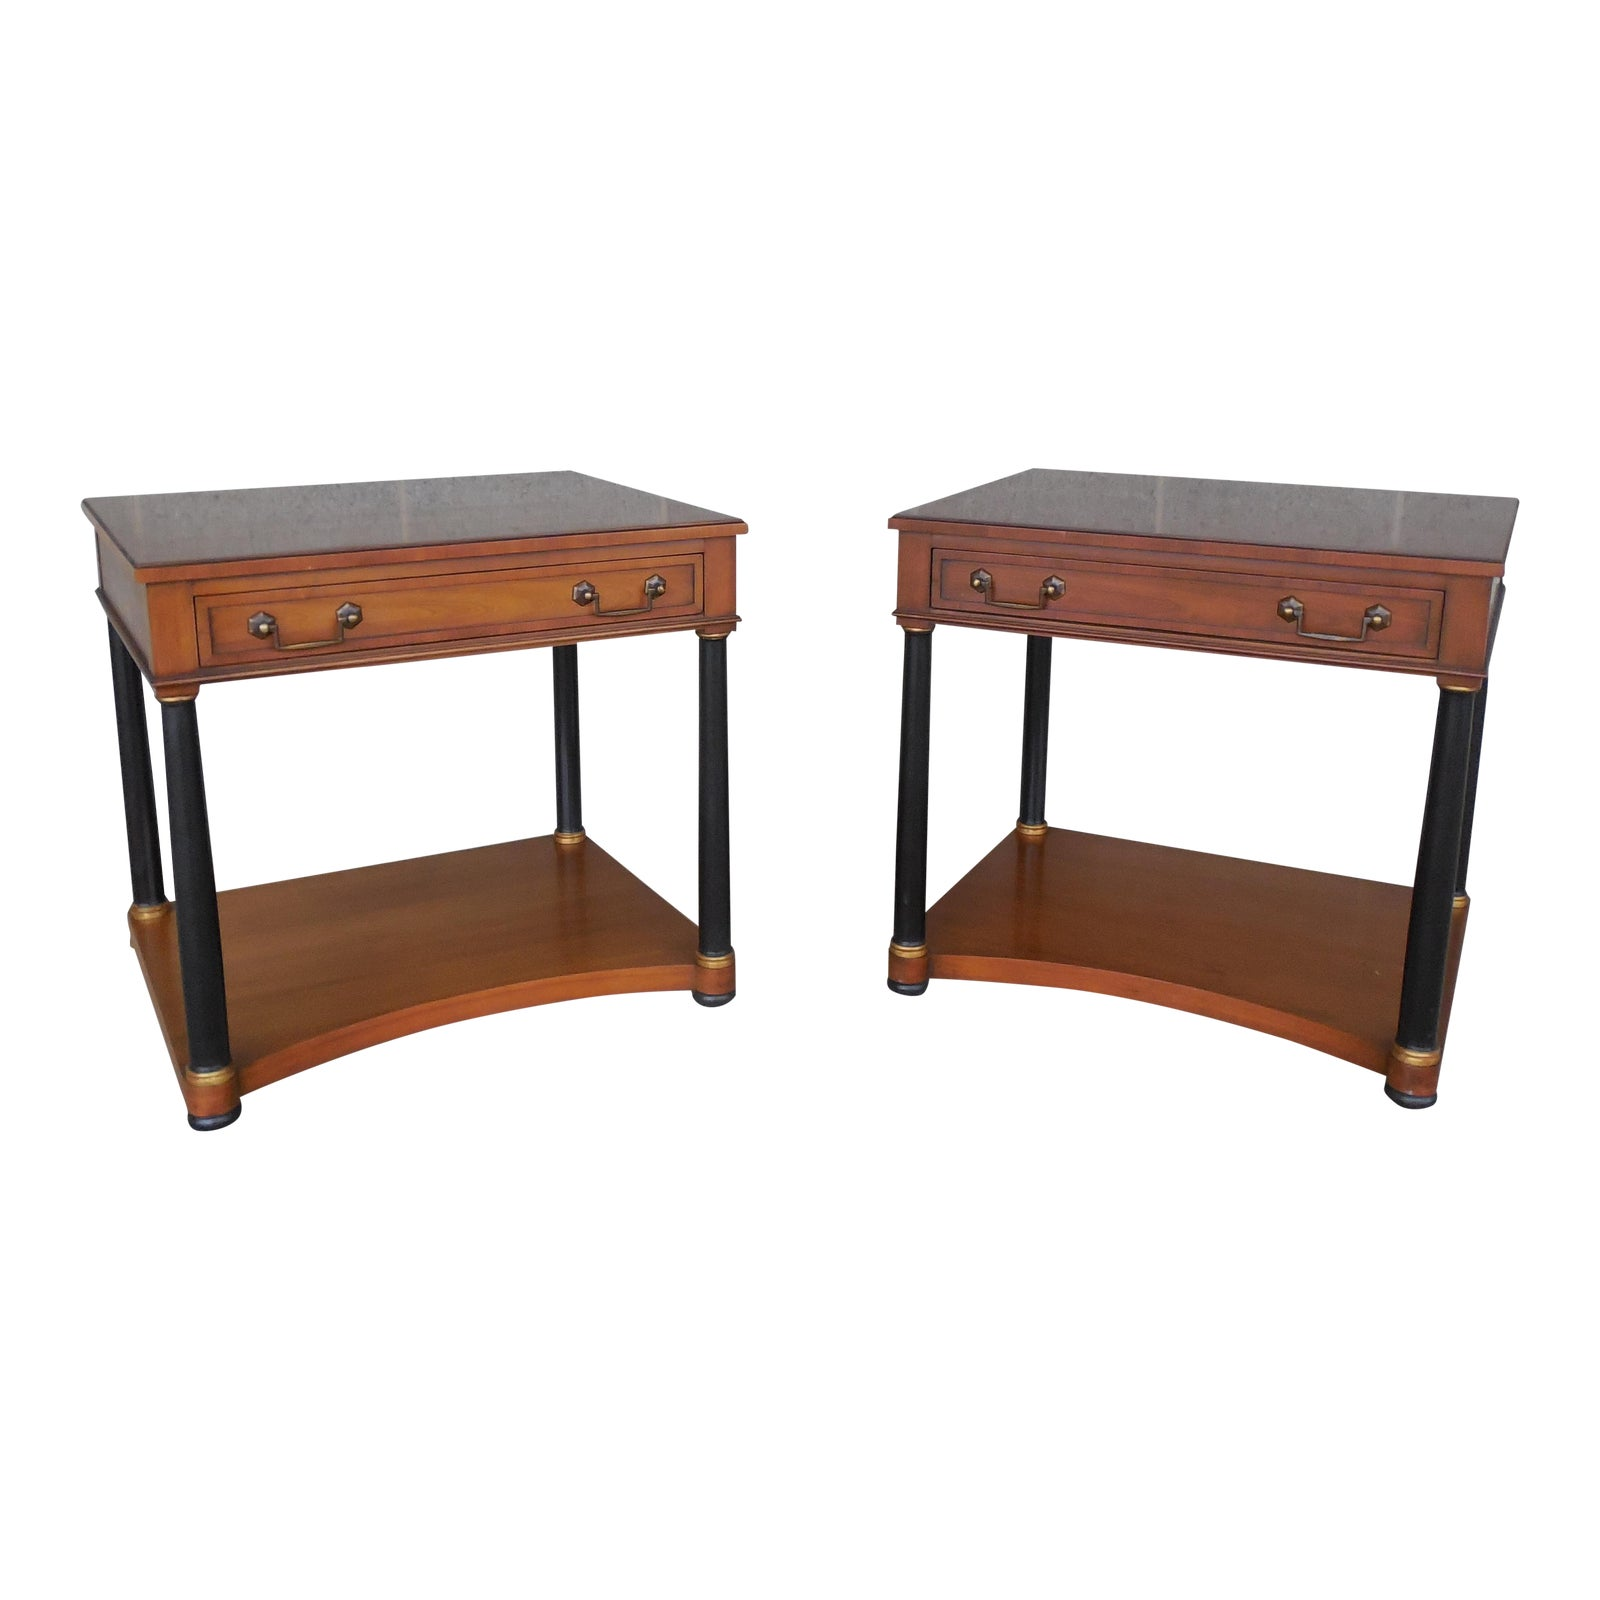 Henredon Heritage Regency Neo Classical Style Nightstands  A Pair -